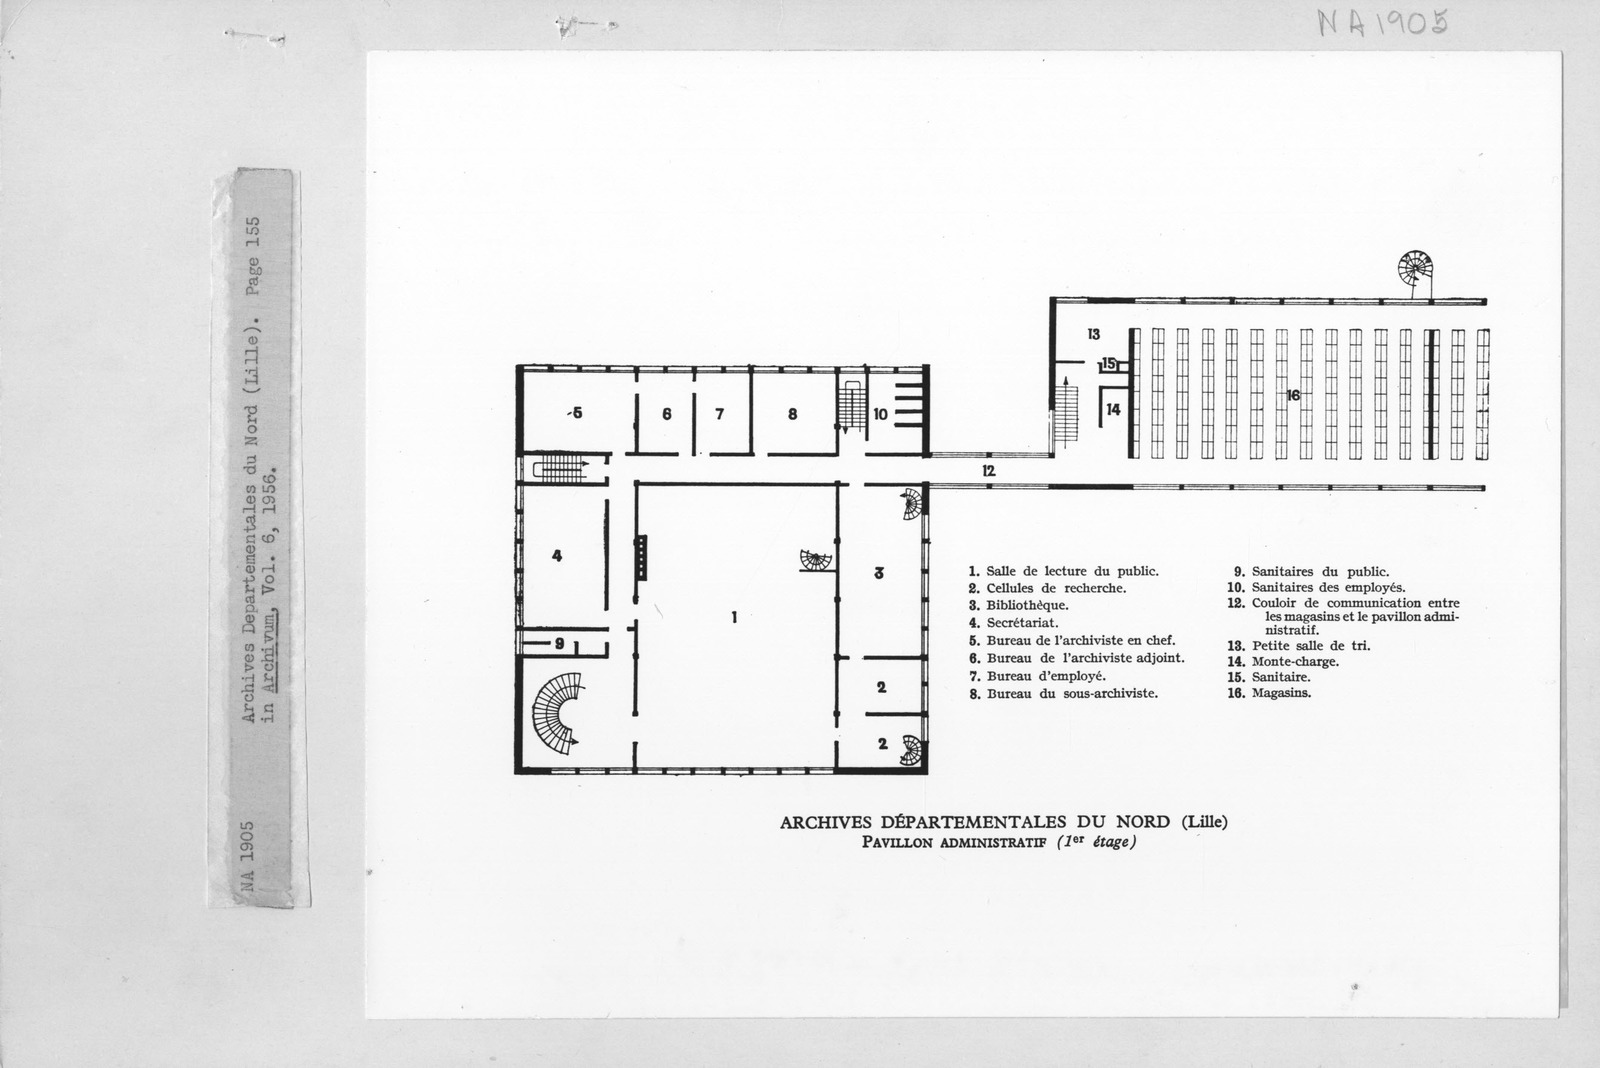 Photograph of Floor Plan of Archives Departementales du Nord (Lille